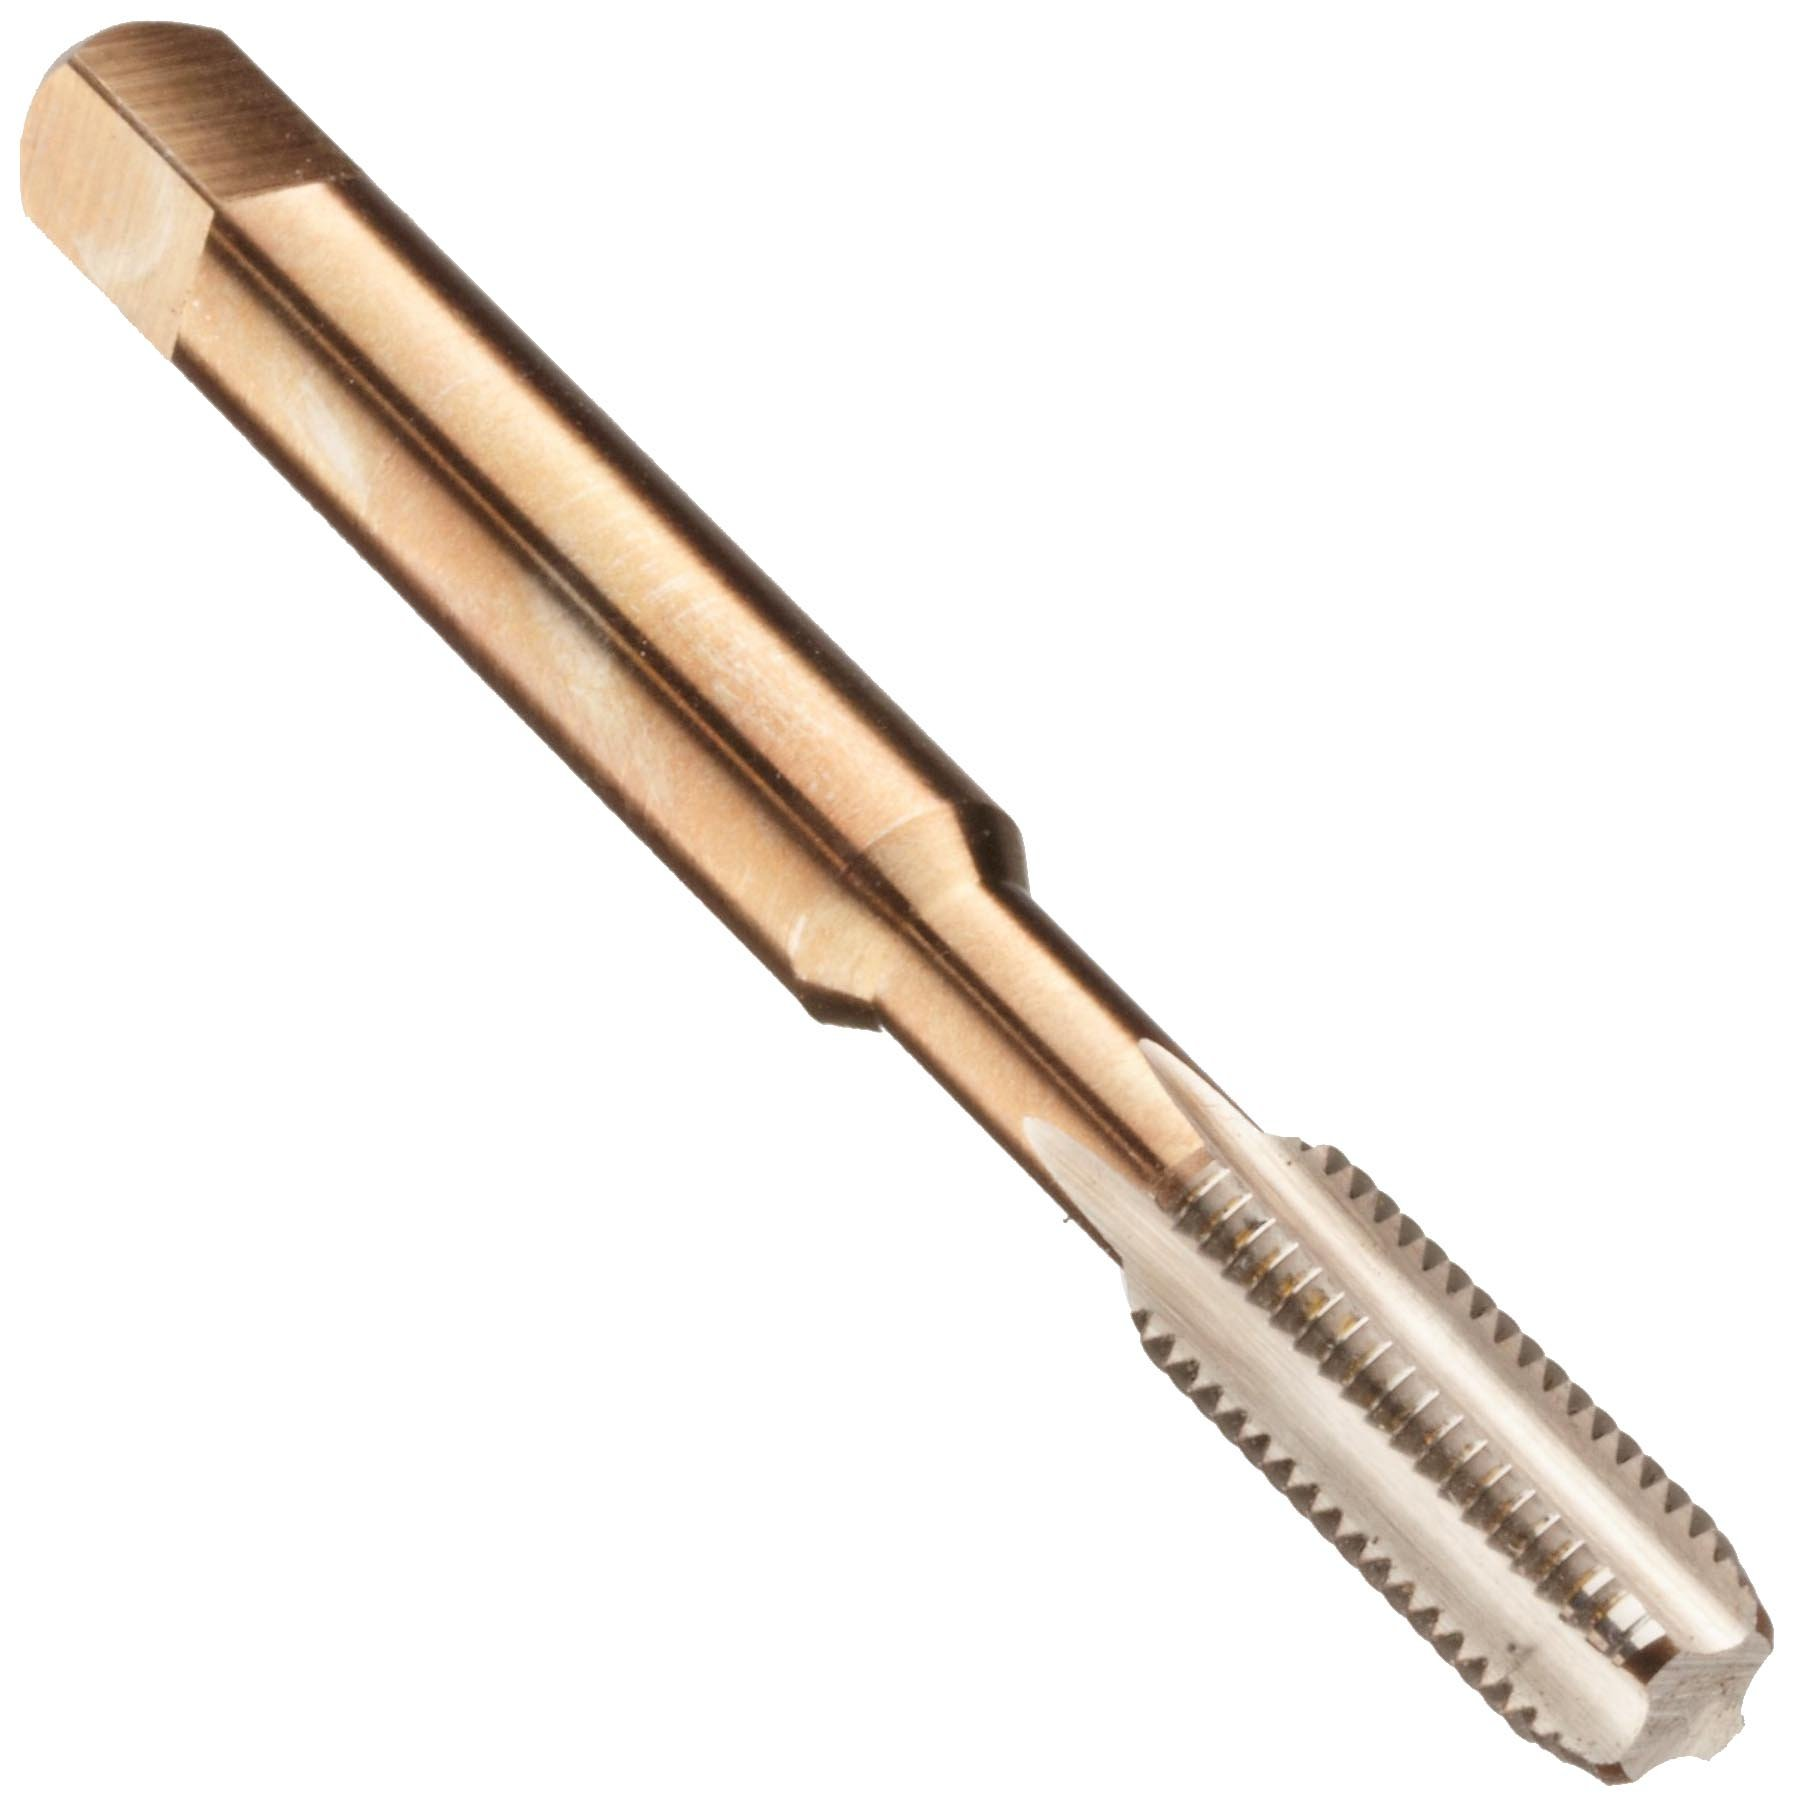 "Dormer E0713/4NO3 General Purpose Hand Taps, Bright Coating, Bottoming Chamfer Length, TPIUNF16, Full Length 4.1/4"", Nominal D 3/4, Flute Length 1.1811"", Shank Diameter 0.5900"""